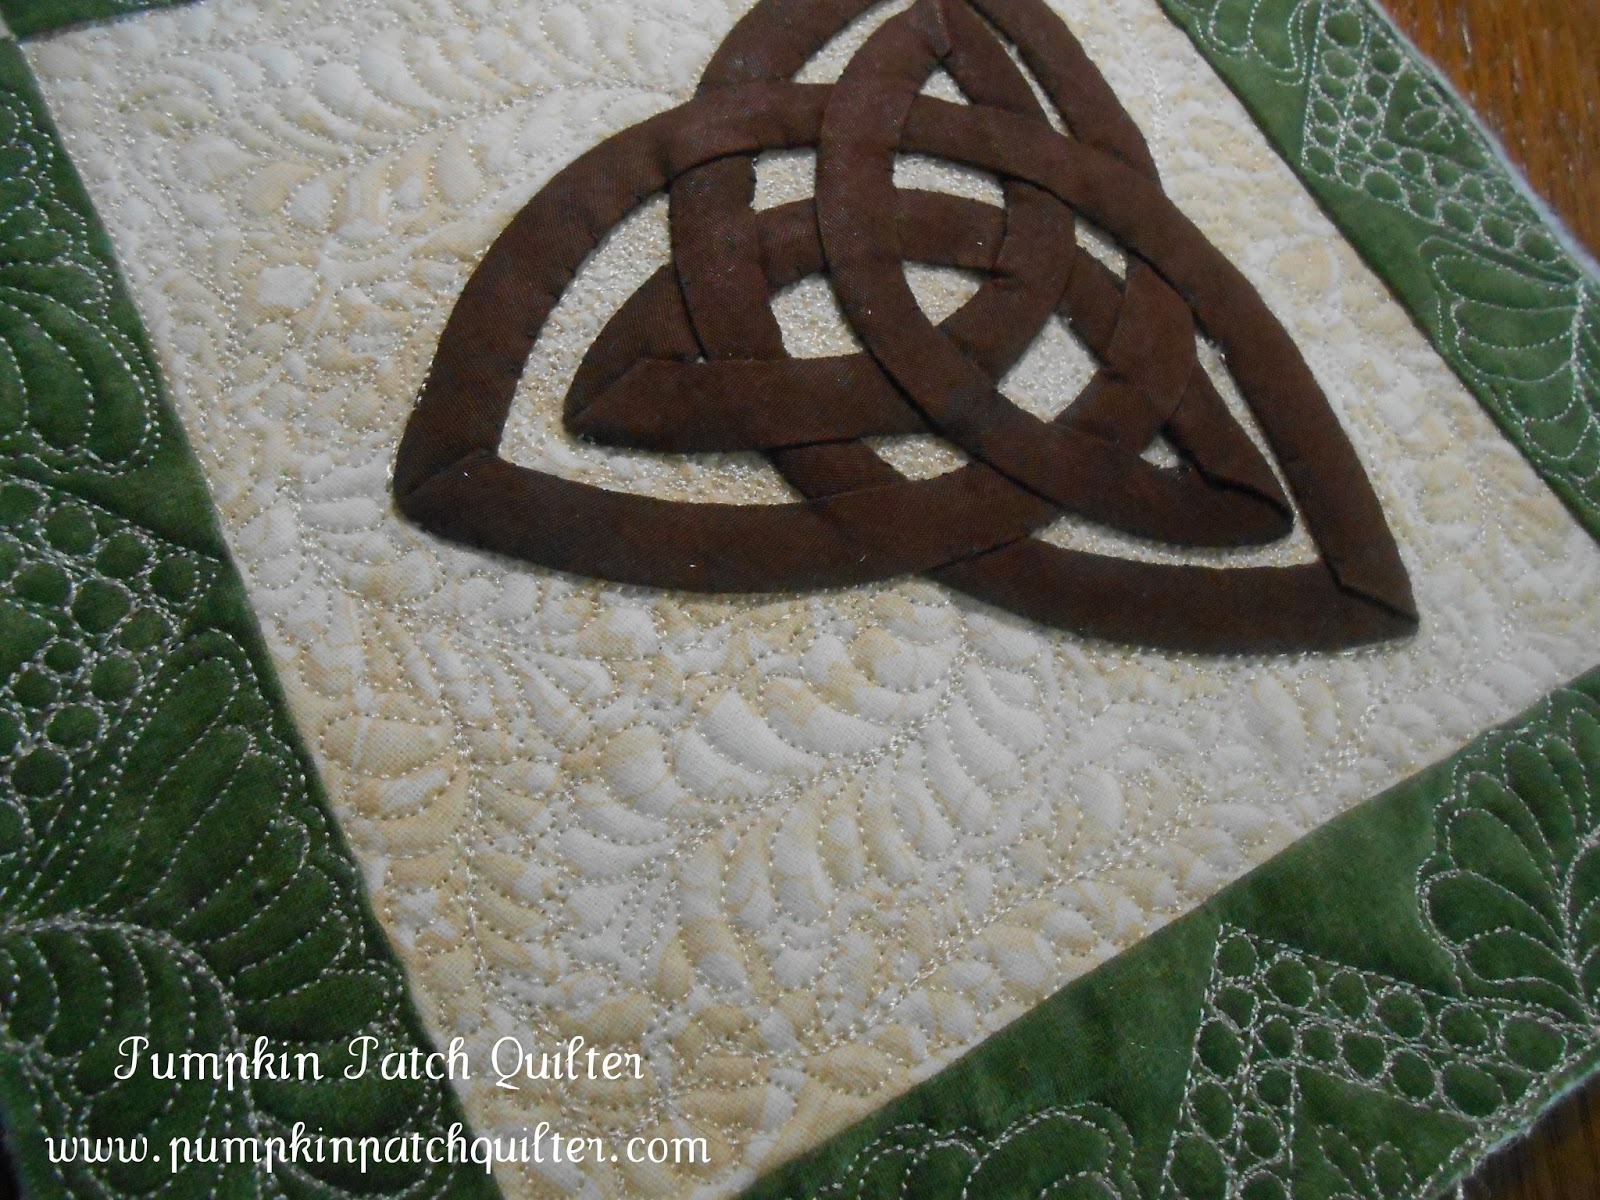 Pumpkin Patch Quilter: Miniature Celtic Knot Quilt and FMQ Feather ... : knotting quilts - Adamdwight.com